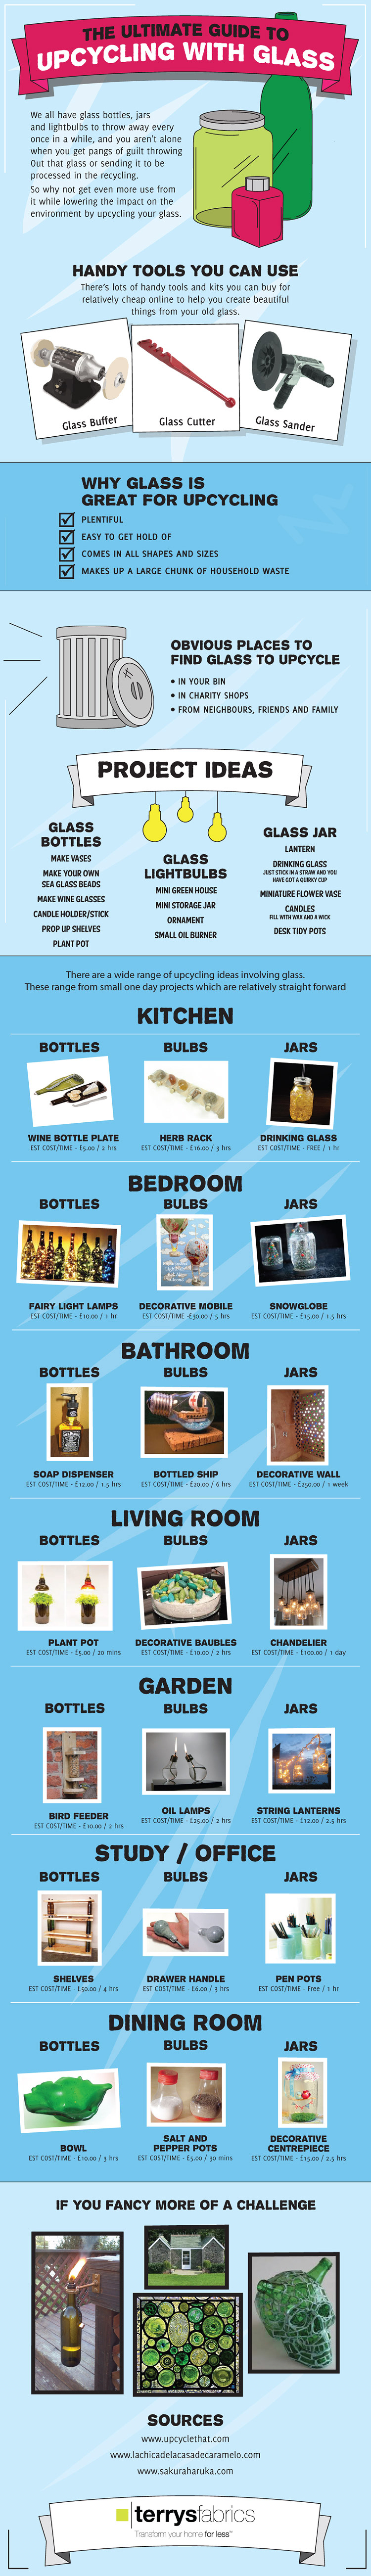 The Ultimate Guide To Upcycling With Glass Infographic